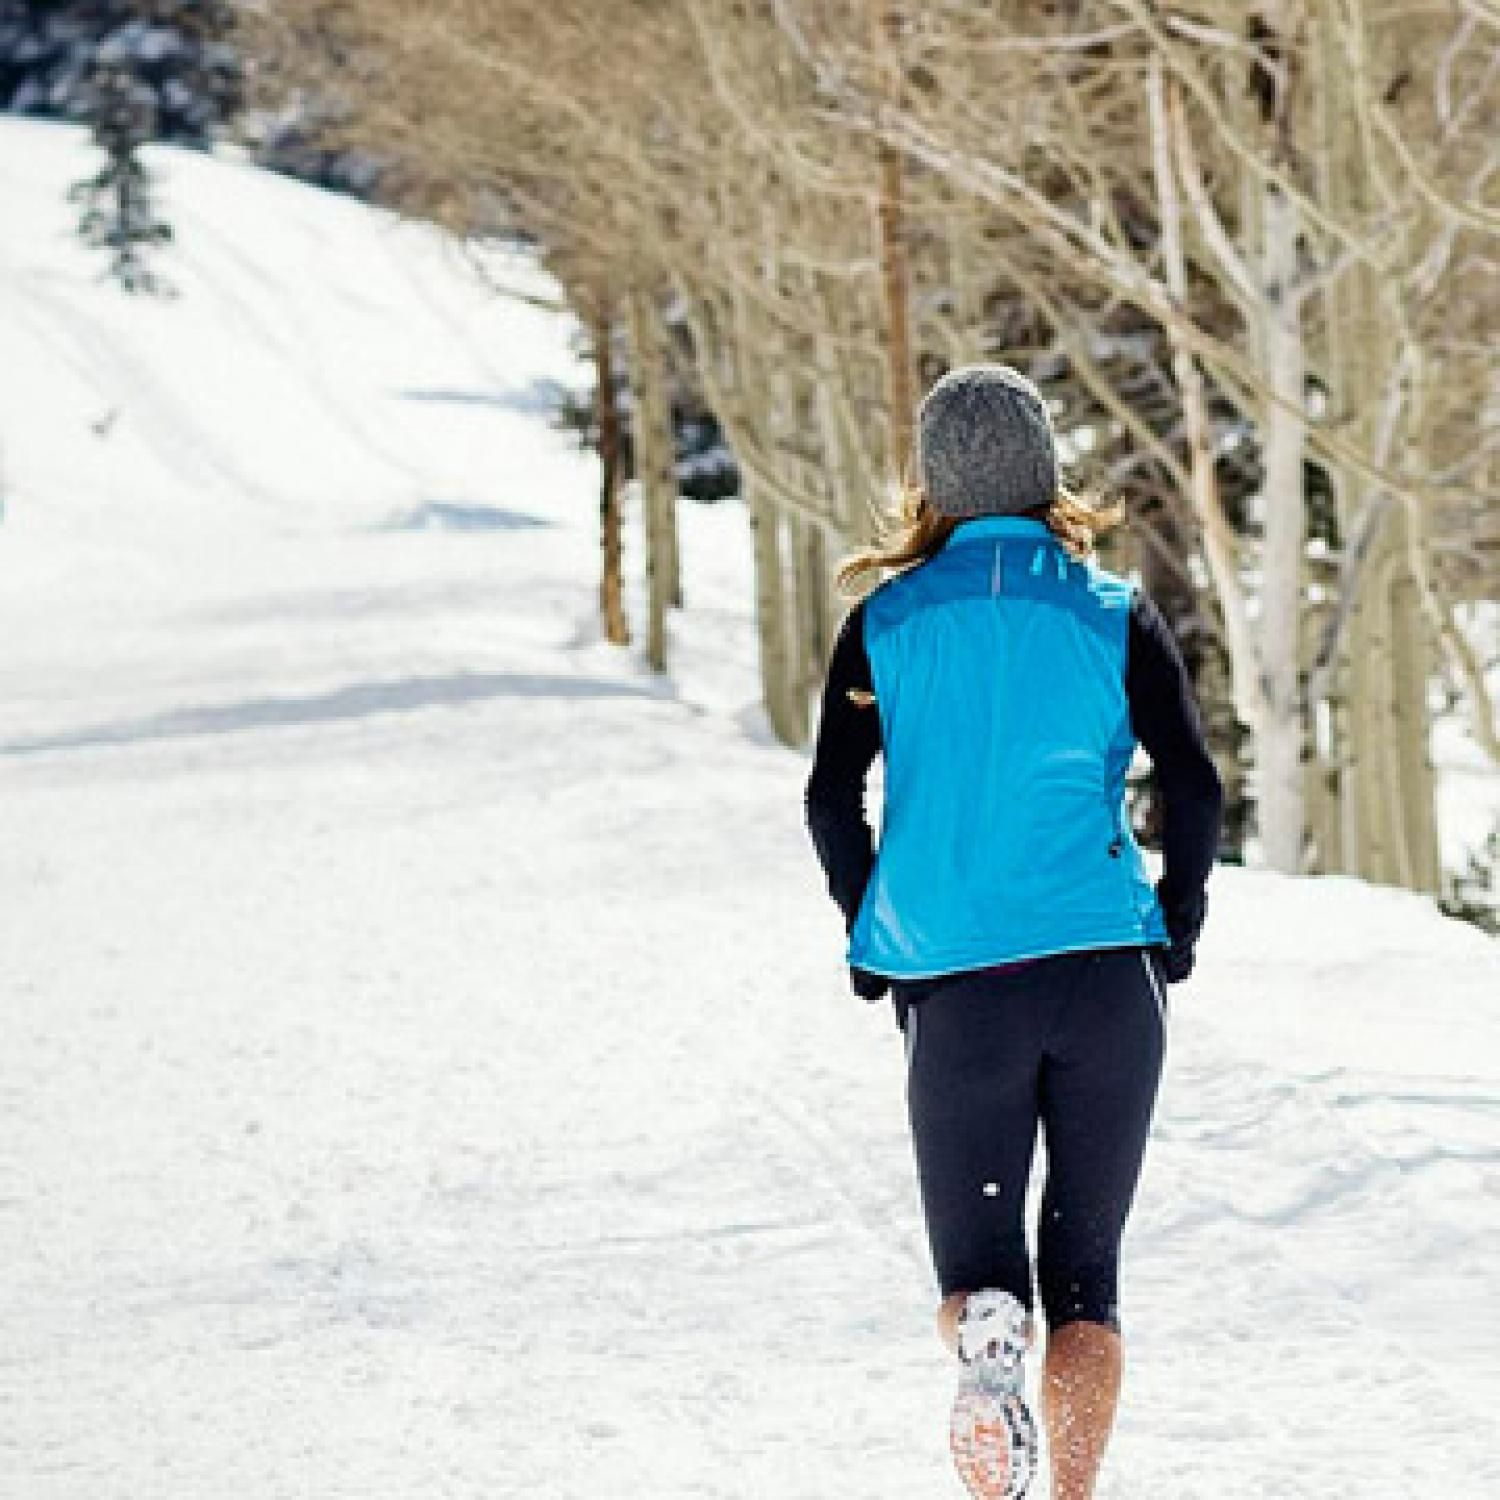 Runner bummer: We tend to lose some of our fitness this season by sitting out the snow and the shivery temps, researchers at Ohio State University found. Beat the backslide with these tips from Jeff Gaudette, the head coach for RunnersConnect, an online training site. - Fitnessmagazine.com